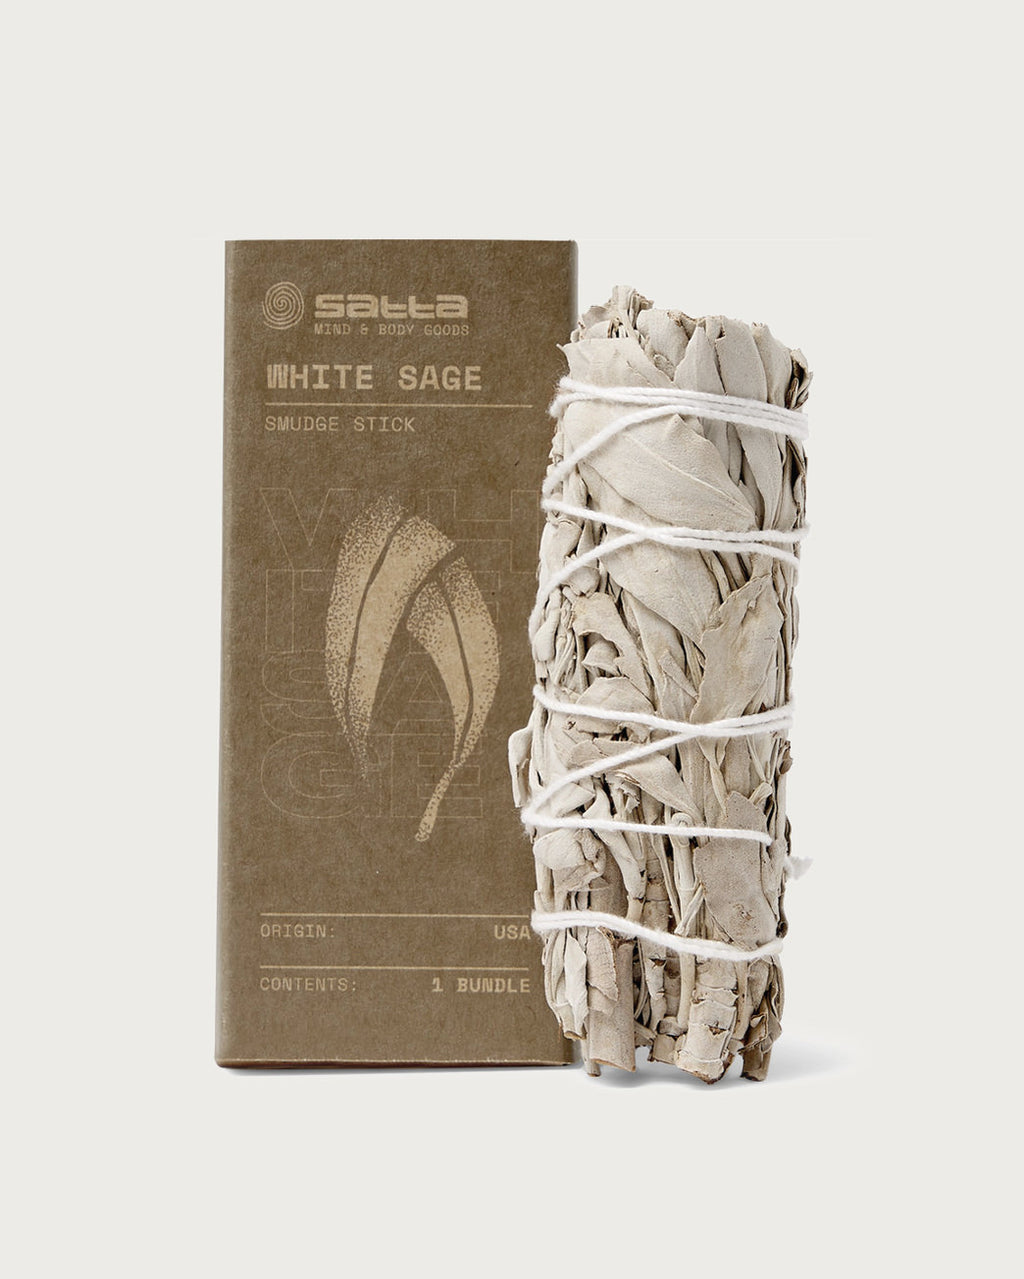 Satta White Sage Incense - Smudge Stick | SATTA